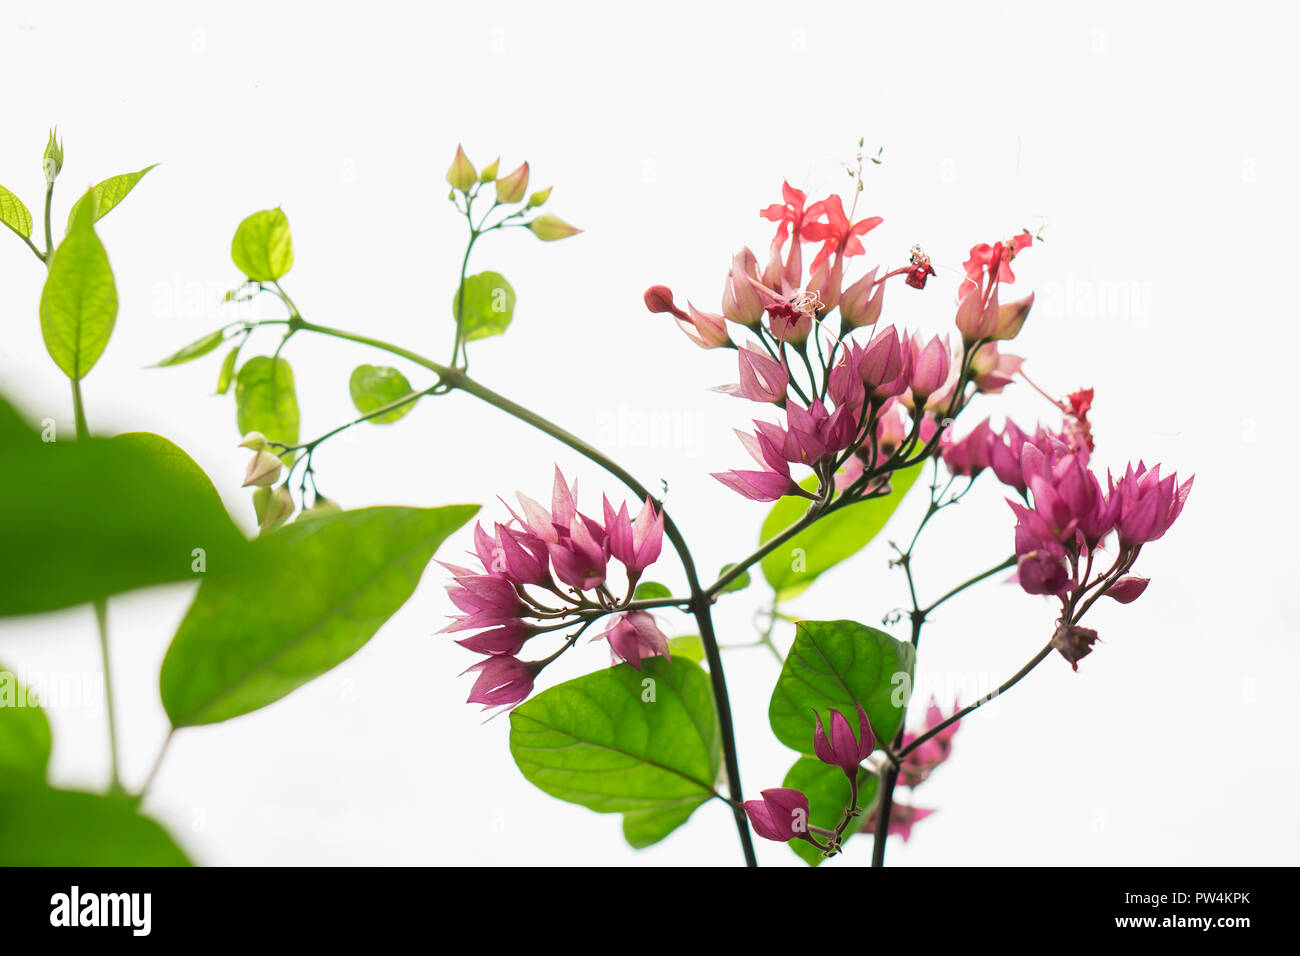 Close-up of bougainvillea blooming on plant stems against white background - Stock Image